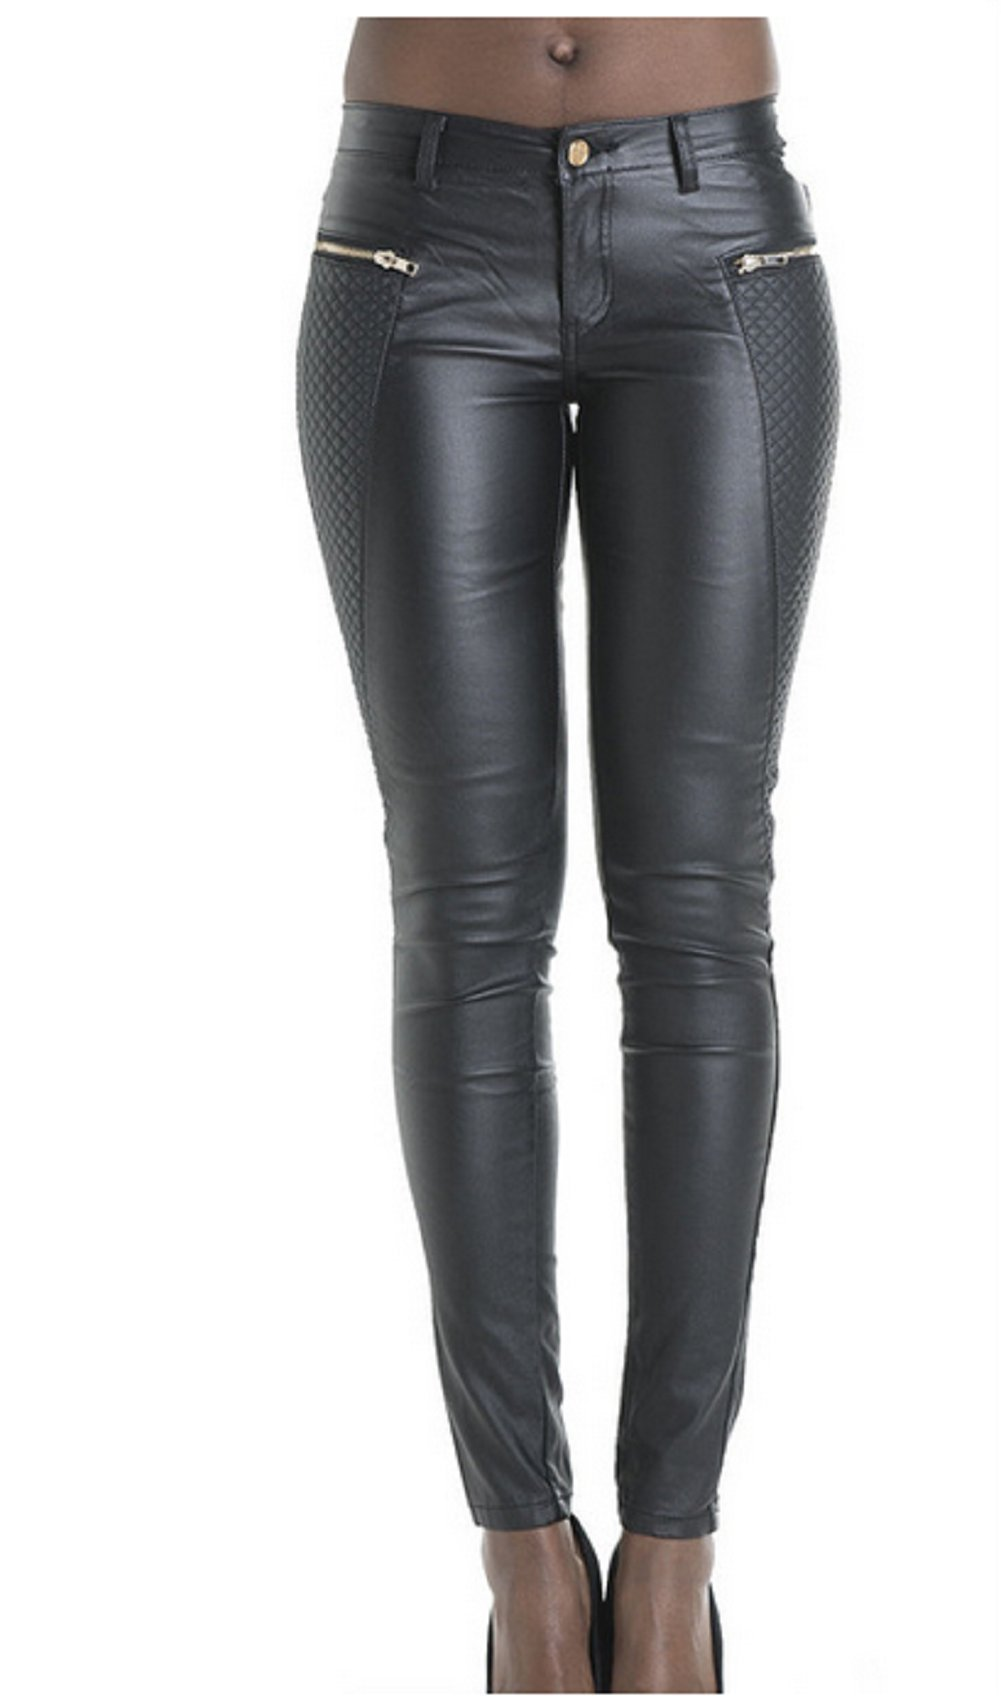 Unko Womens Slim Fit Embroidered Faux Leather Zipper Feet Pants US M Black